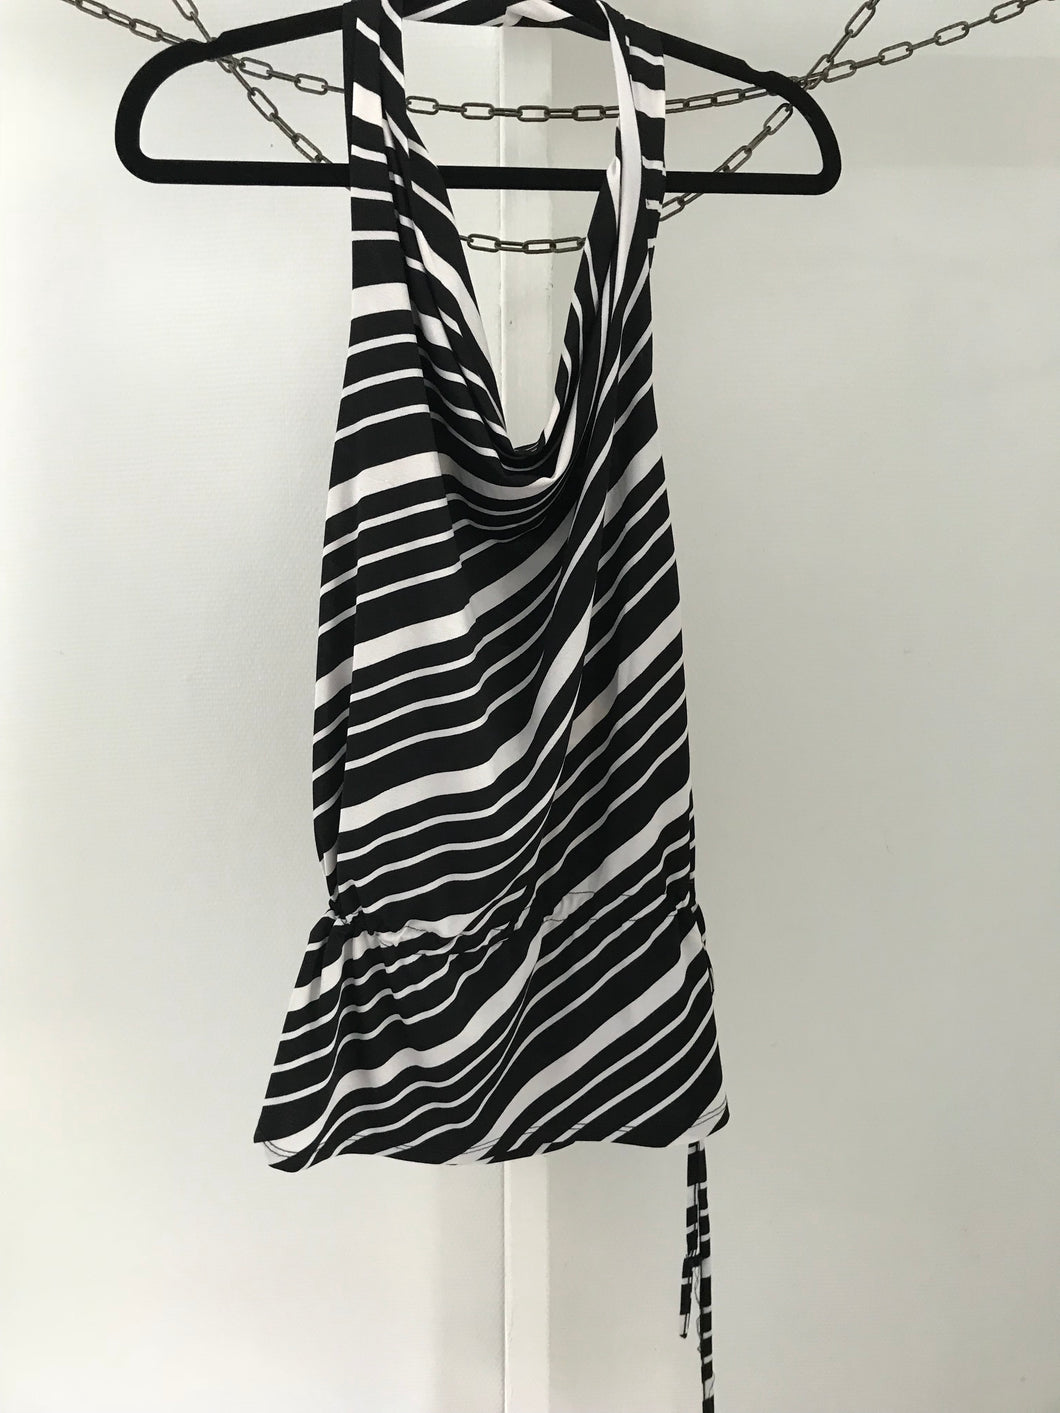 Jeans west black/white striped halter top Size XS (estimated 8)